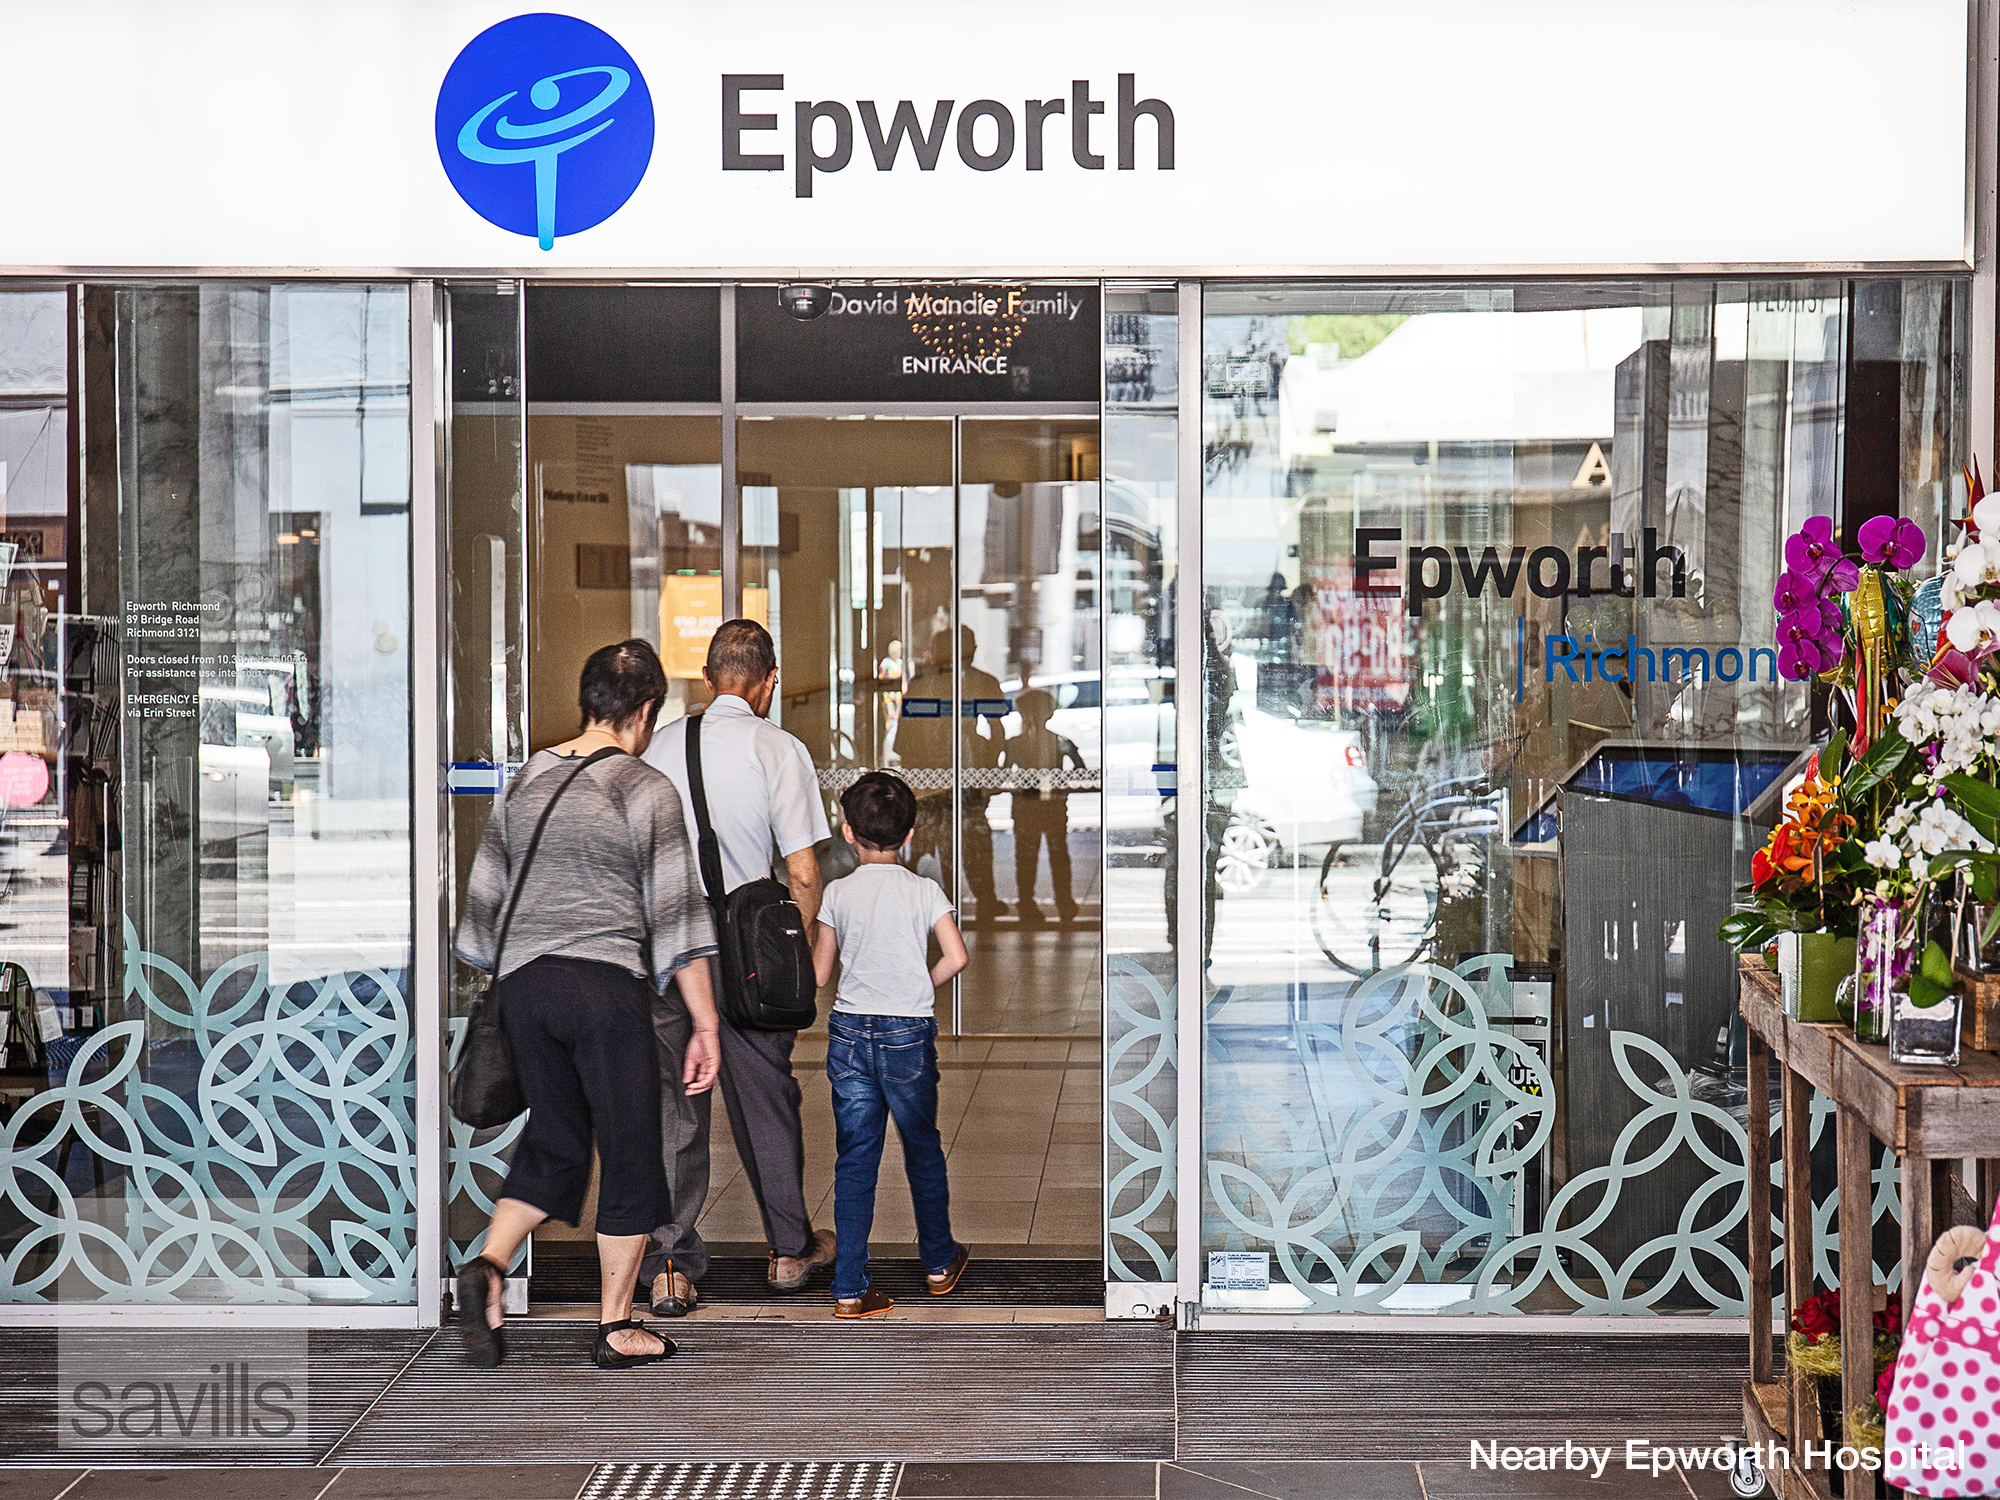 11 - Nearby Epworth Hospital.jpg